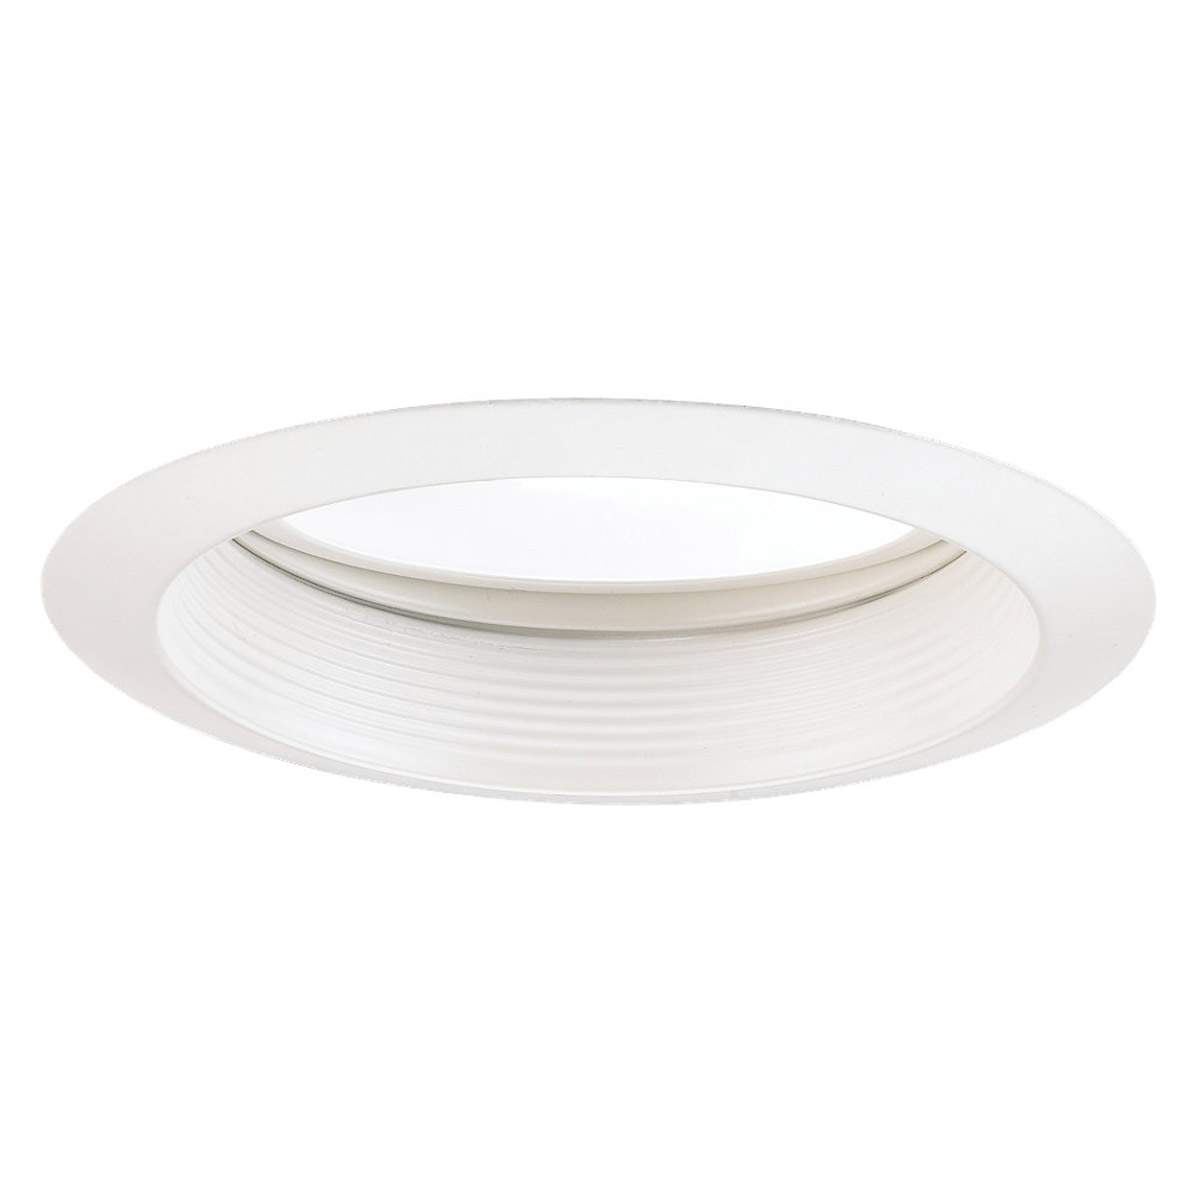 Sea Gull Lighting Signature Recessed Light in White 11044AT-15